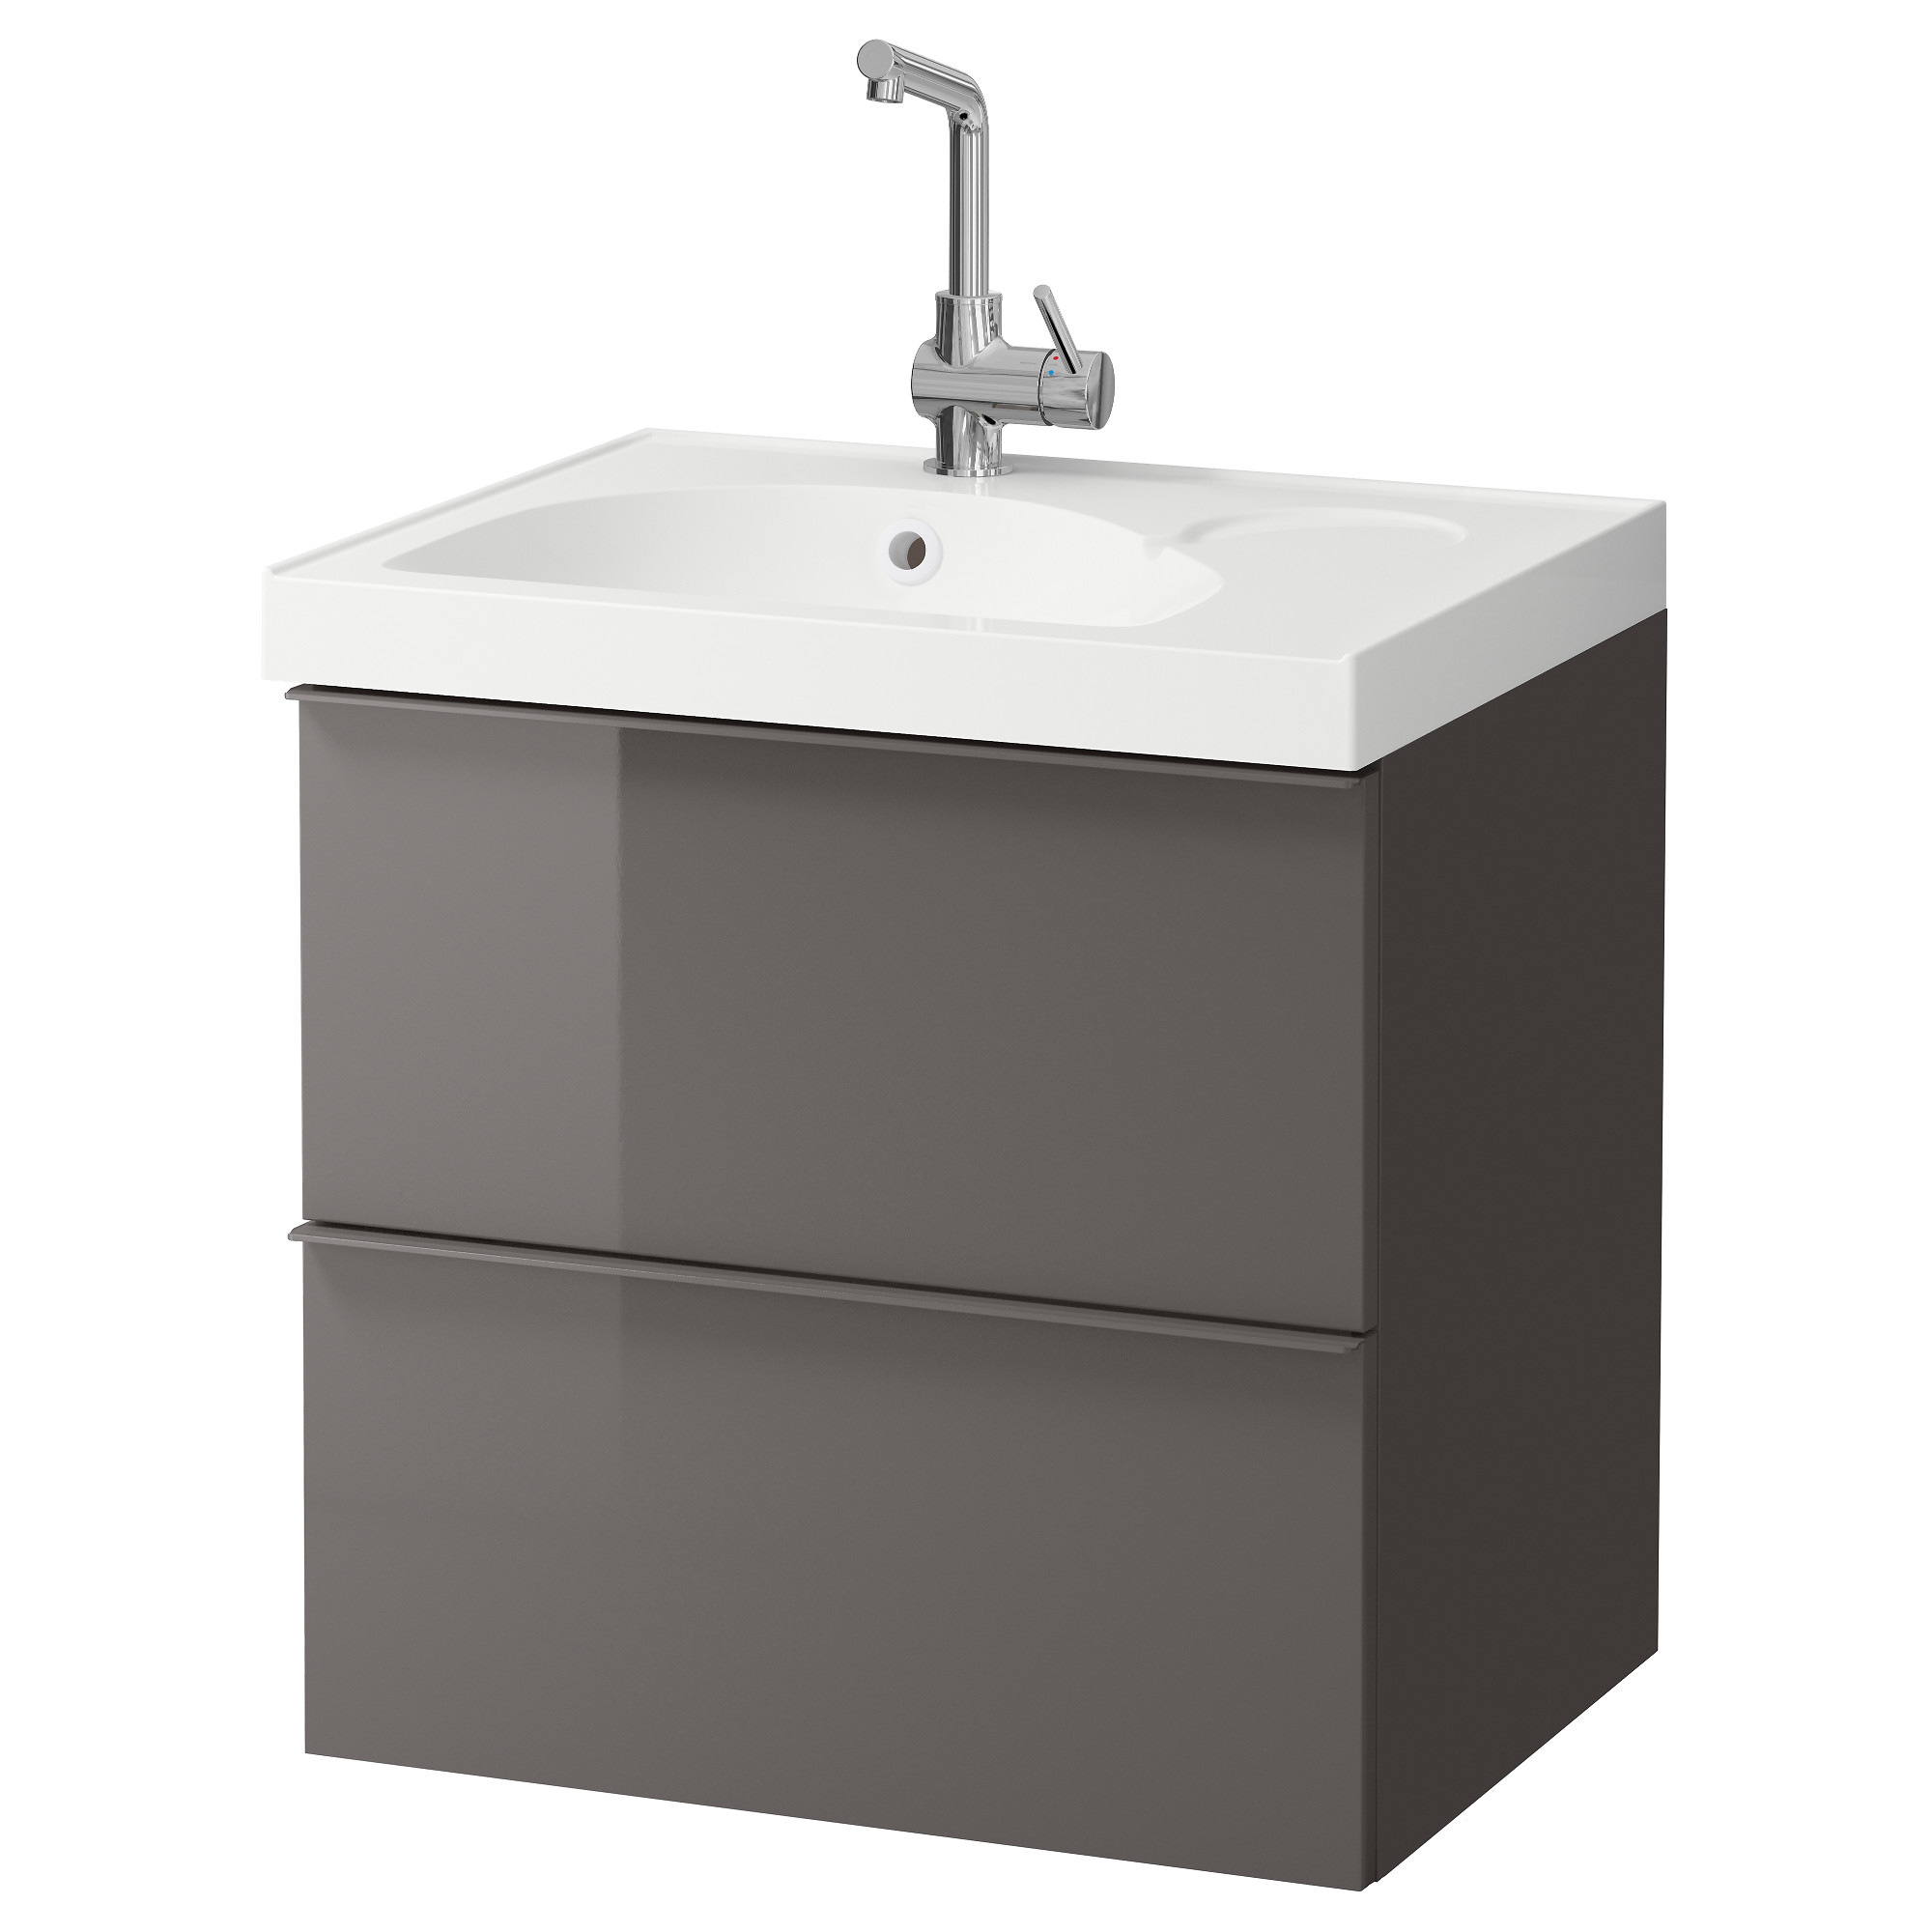 Bathroom cabinets ottawa - Godmorgon Edeboviken Sink Cabinet With 2 Drawers High Gloss Gray Width 24 3